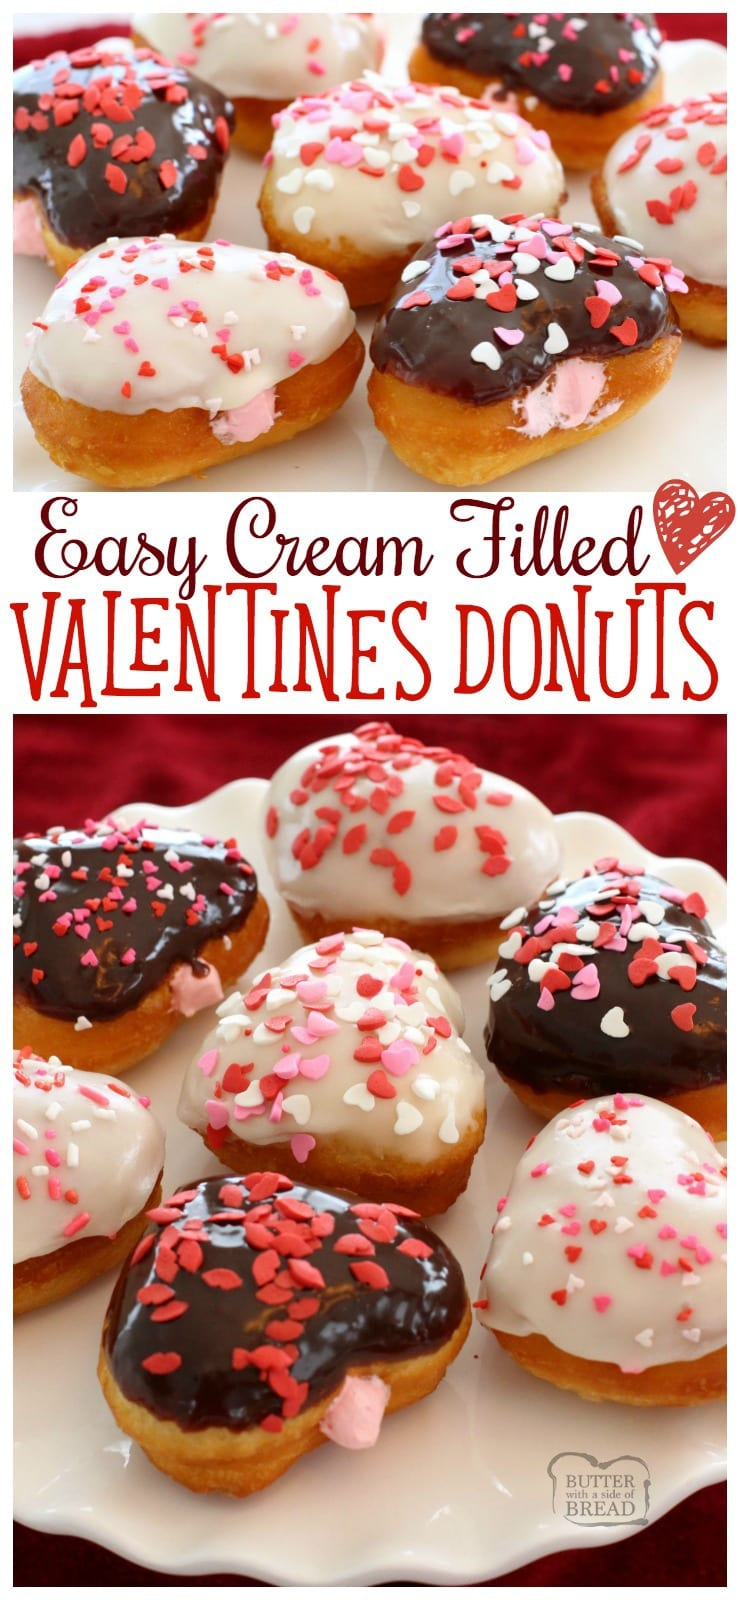 Easy 20-Minute Cream Filled Valentines Donuts - Butter With A Side of Bread